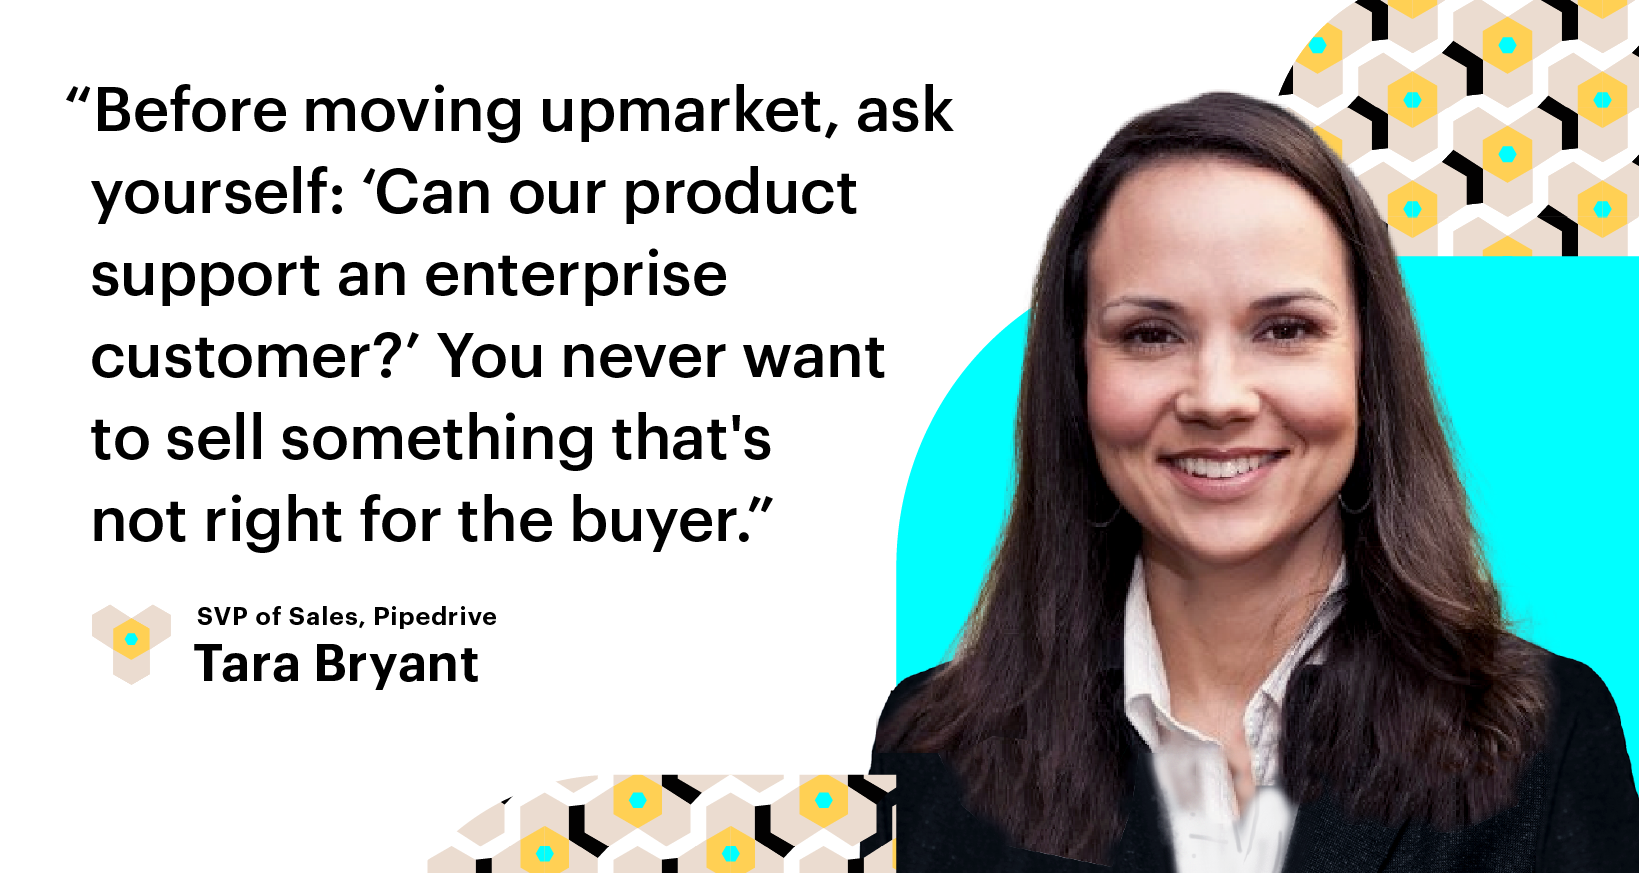 Scale Build Your Sales Team. Before moving upmarket, ask yourself: 'Can our product support an enterprise customer?' You never want to sell something that's not right for the buyer. Tara Bryant, Pipedrive